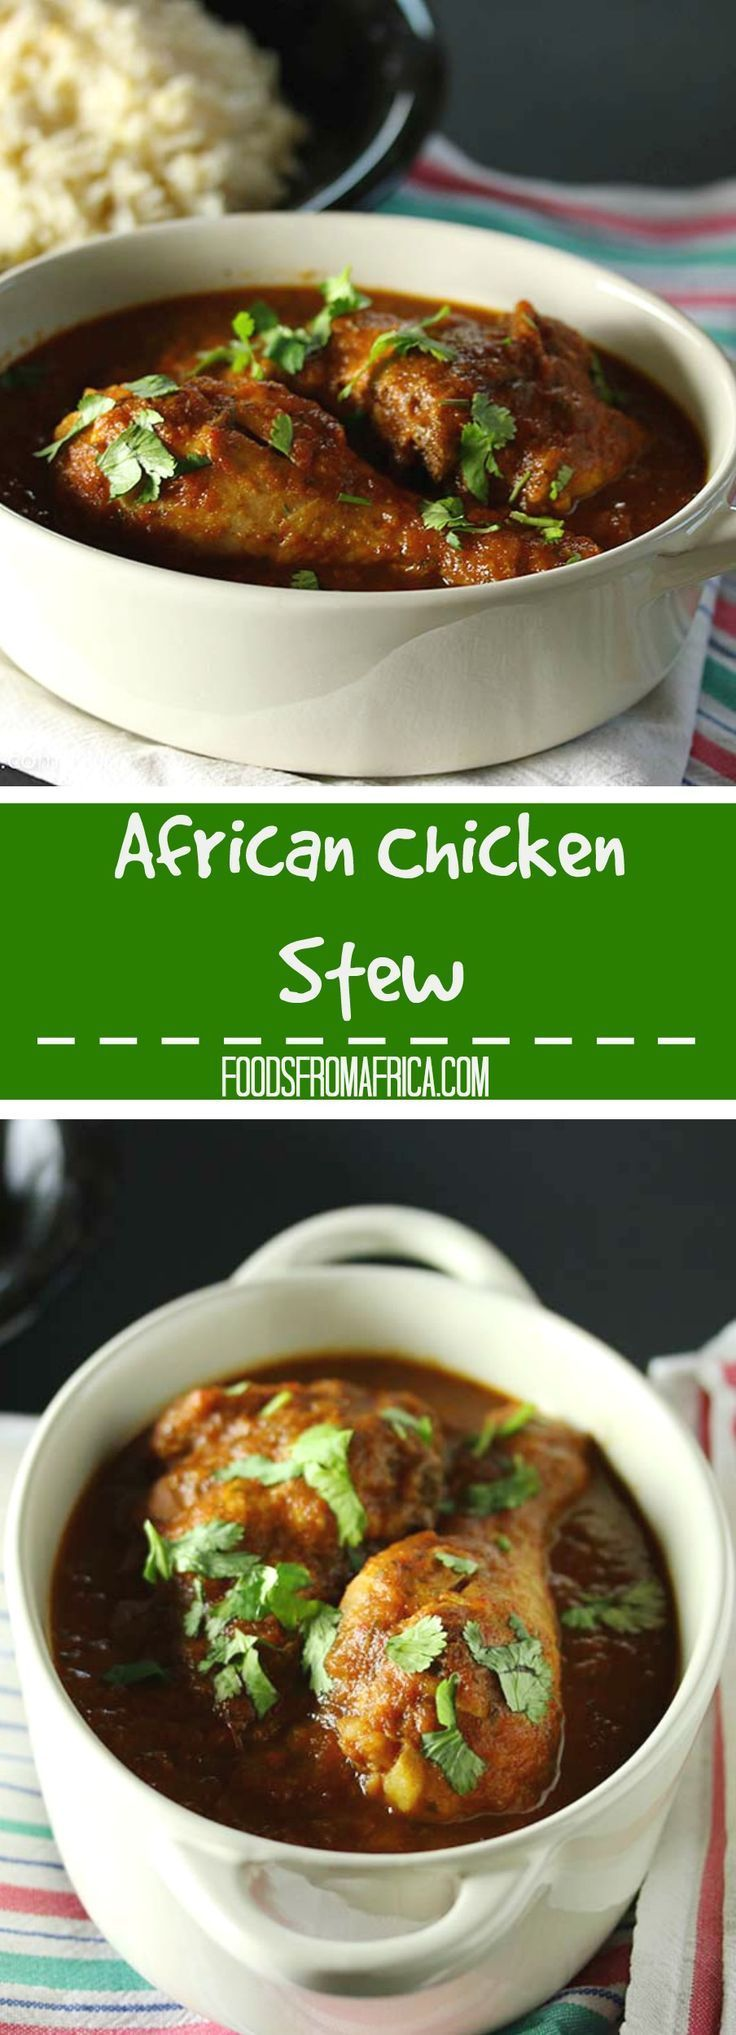 162 best african recipes and dishes images on pinterest african african chicken stew african stewwest african foodafrican food recipesethnic forumfinder Image collections